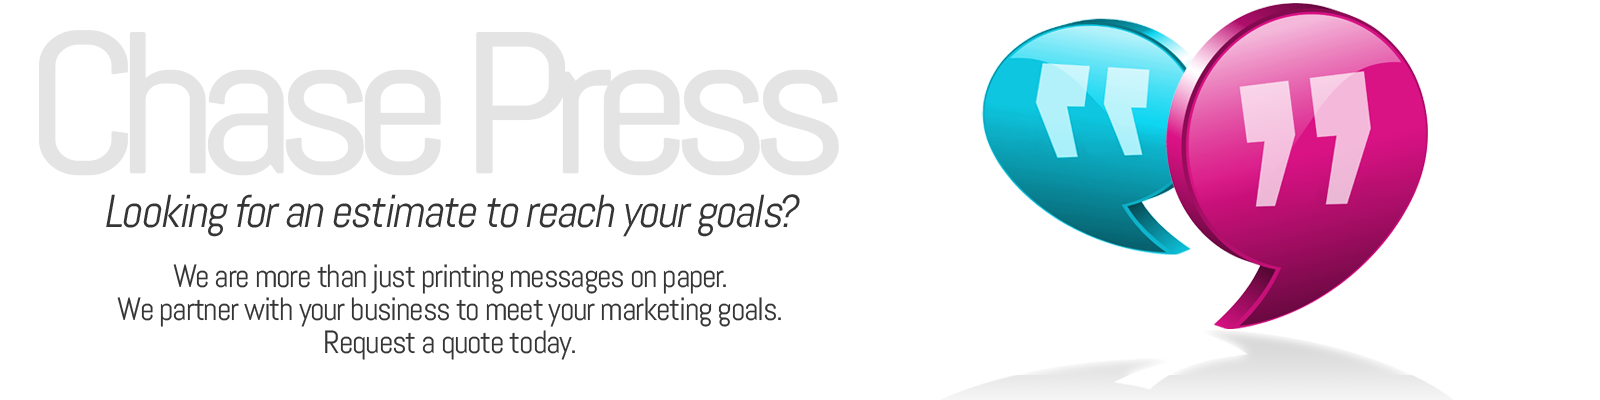 Chase Press is your advertising and marketing partner. Request a quote today.